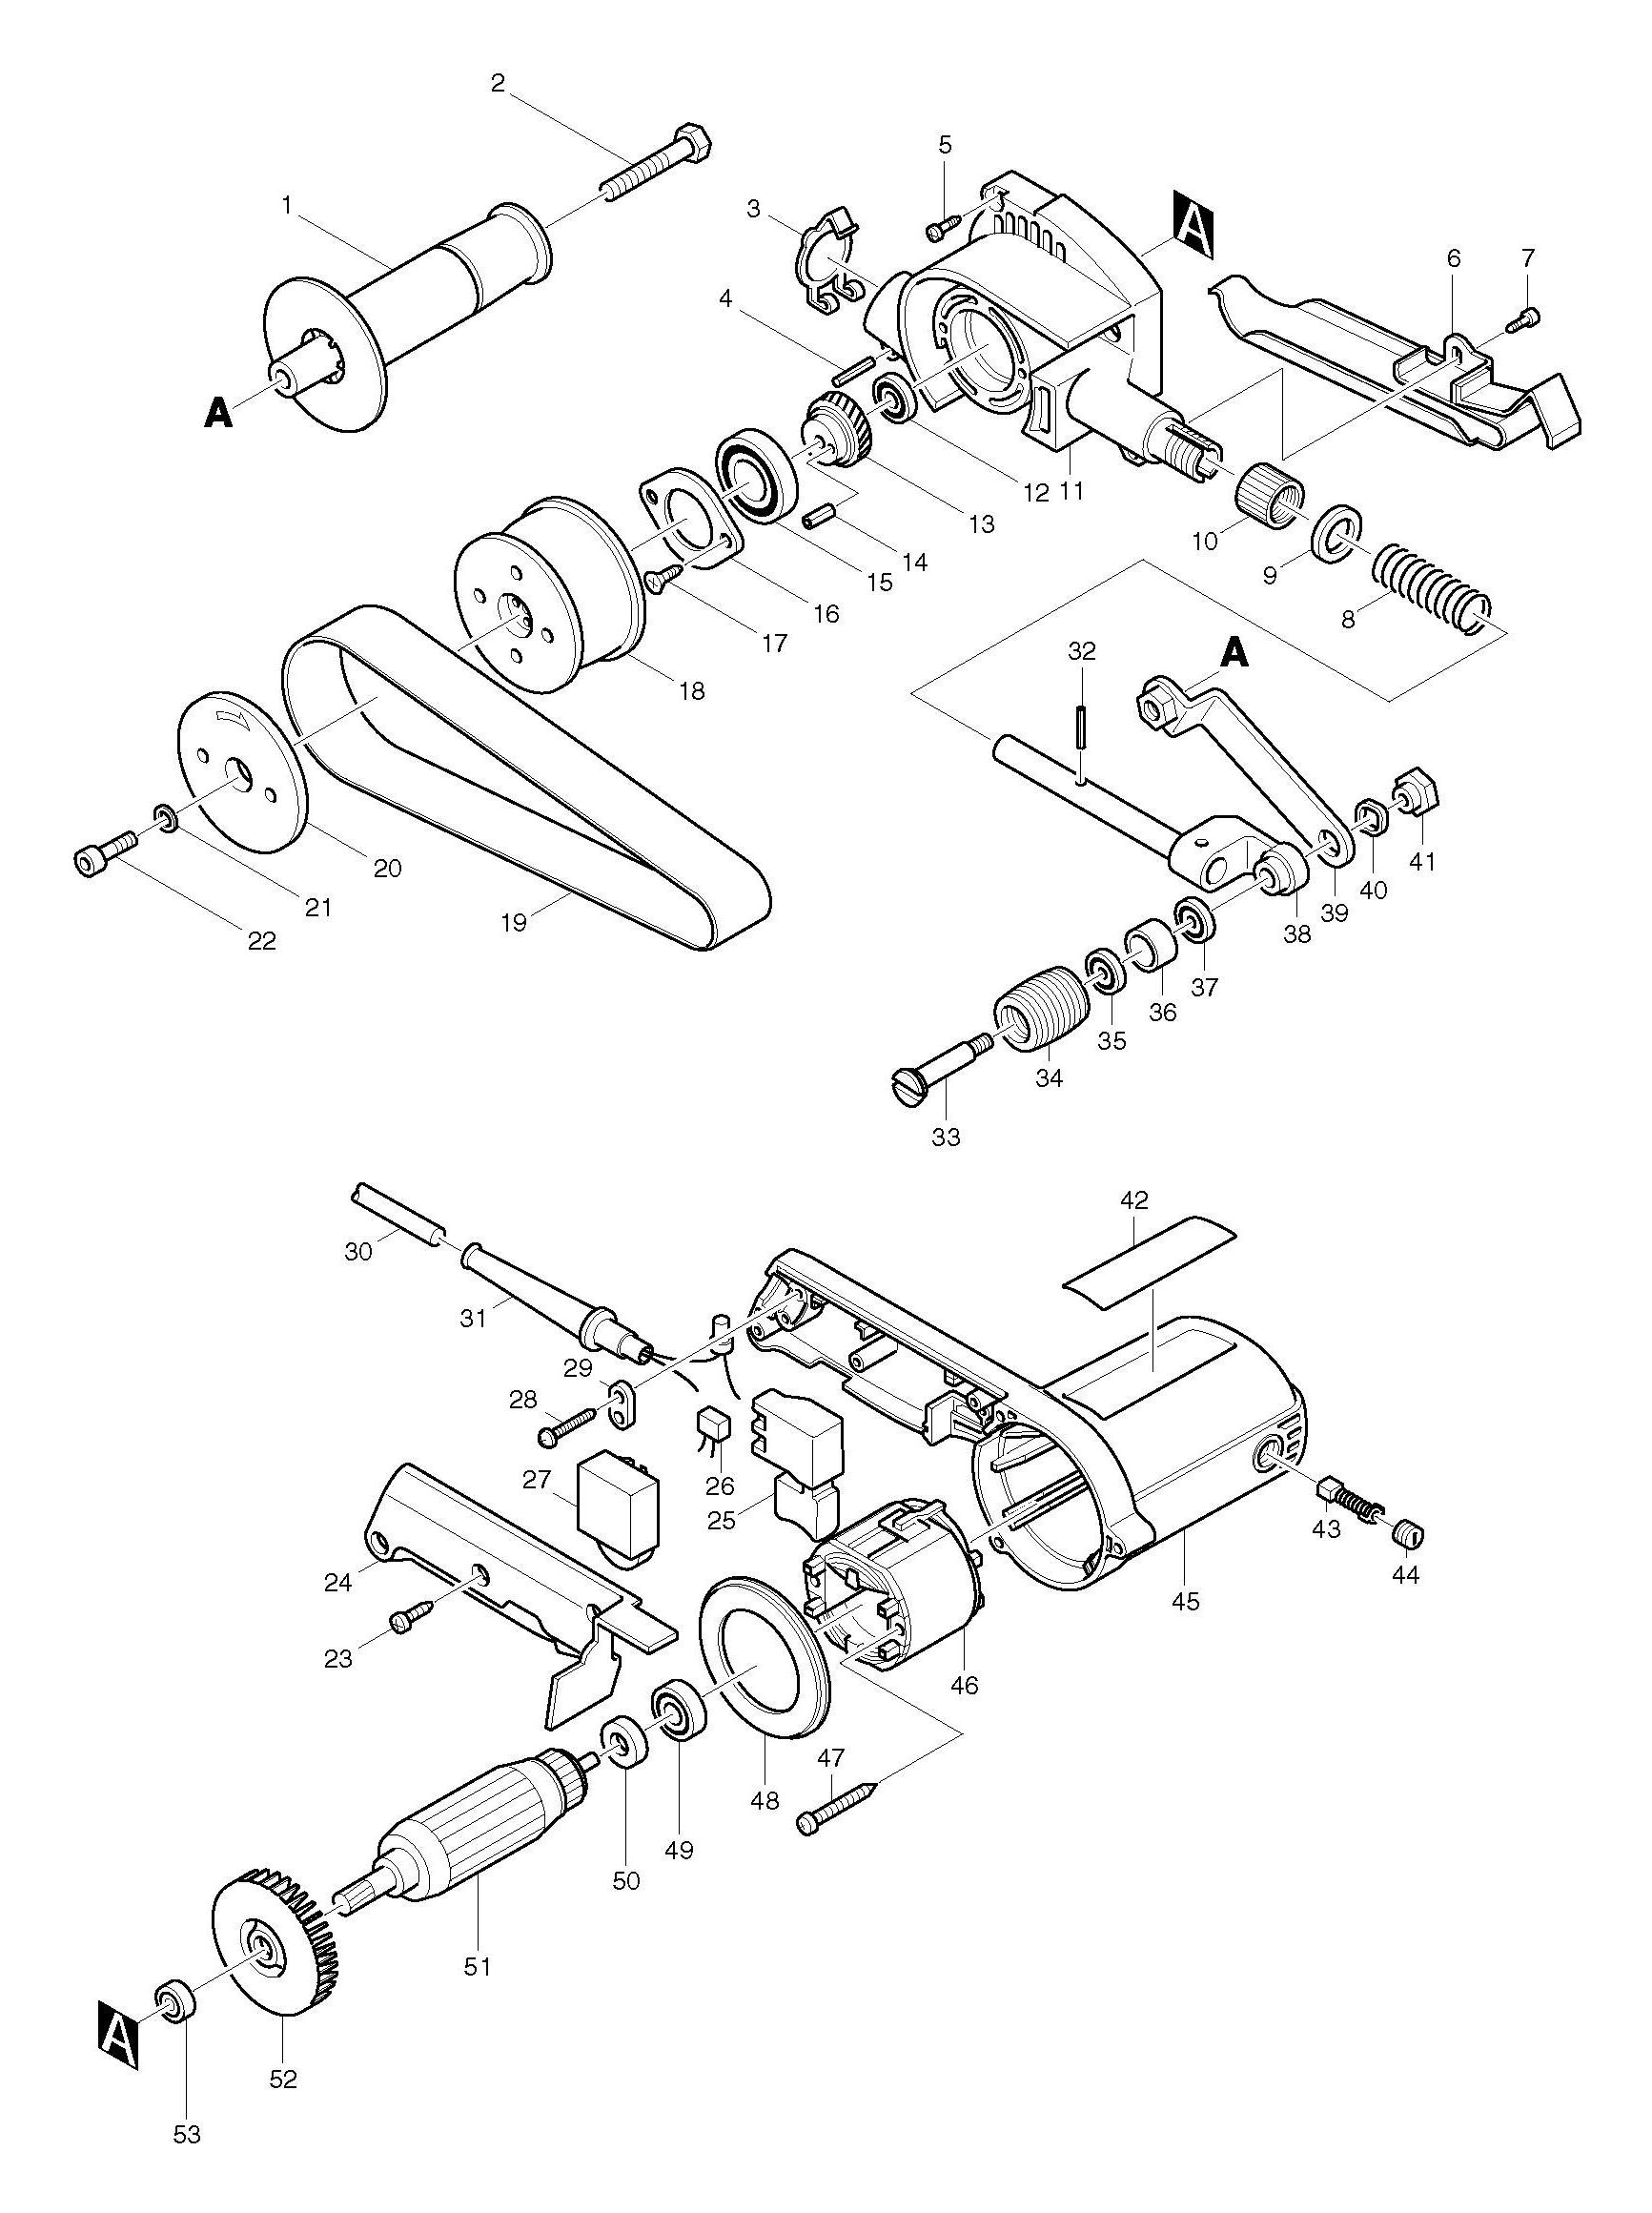 Briggs Stratton Ignition Diagram further 85 Ramcharger Wiring Diagram in addition Rear Engine Custom Cars moreover Yamaha Ttr 250 Wiring Diagram moreover Wiring Diagram Timed Extractor Fan. on dragster wiring diagrams